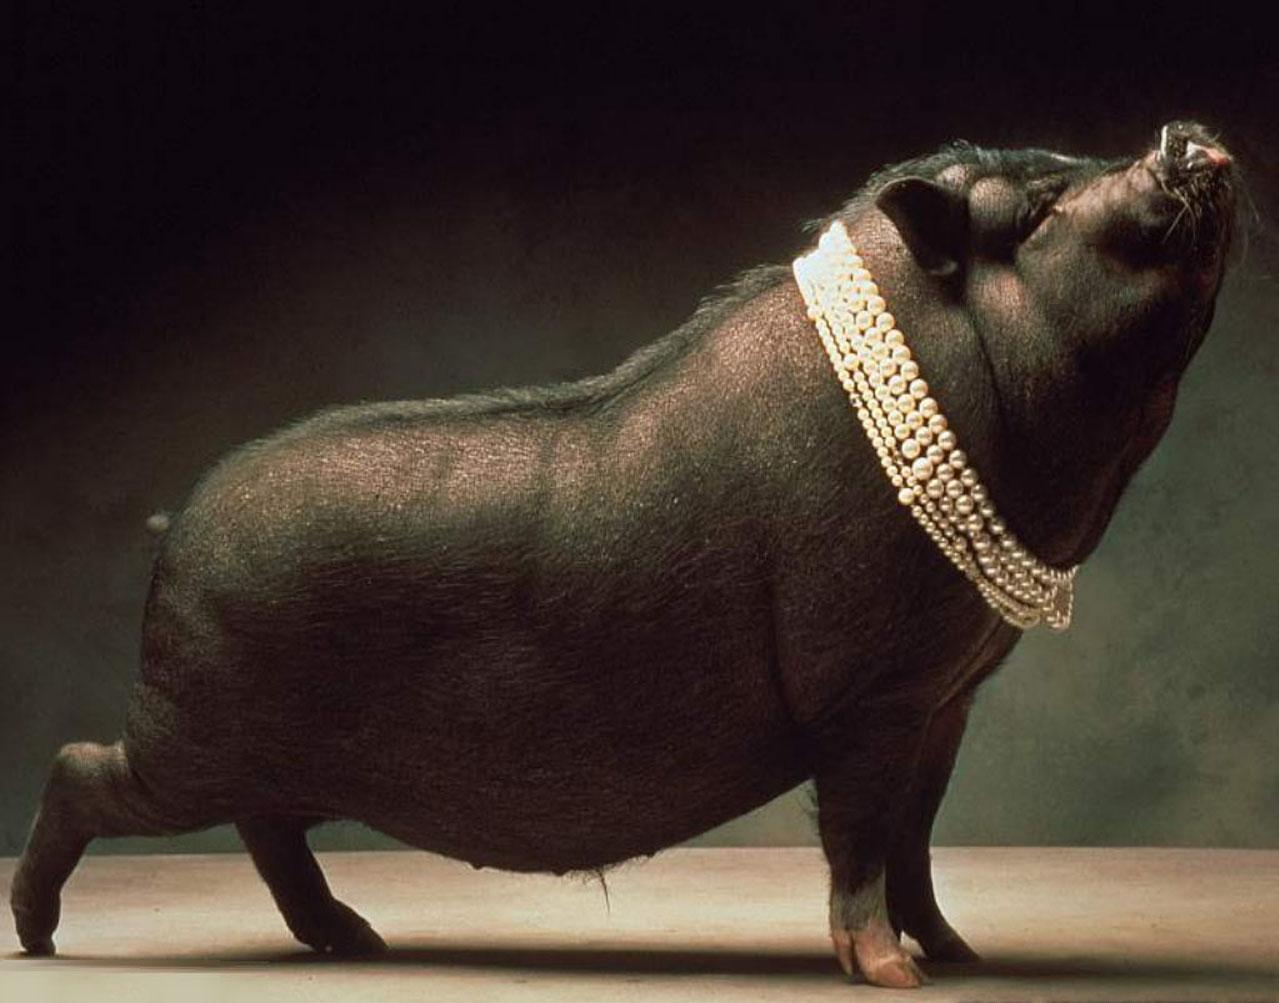 Pig Wallpapers Animals Library 1279x1003